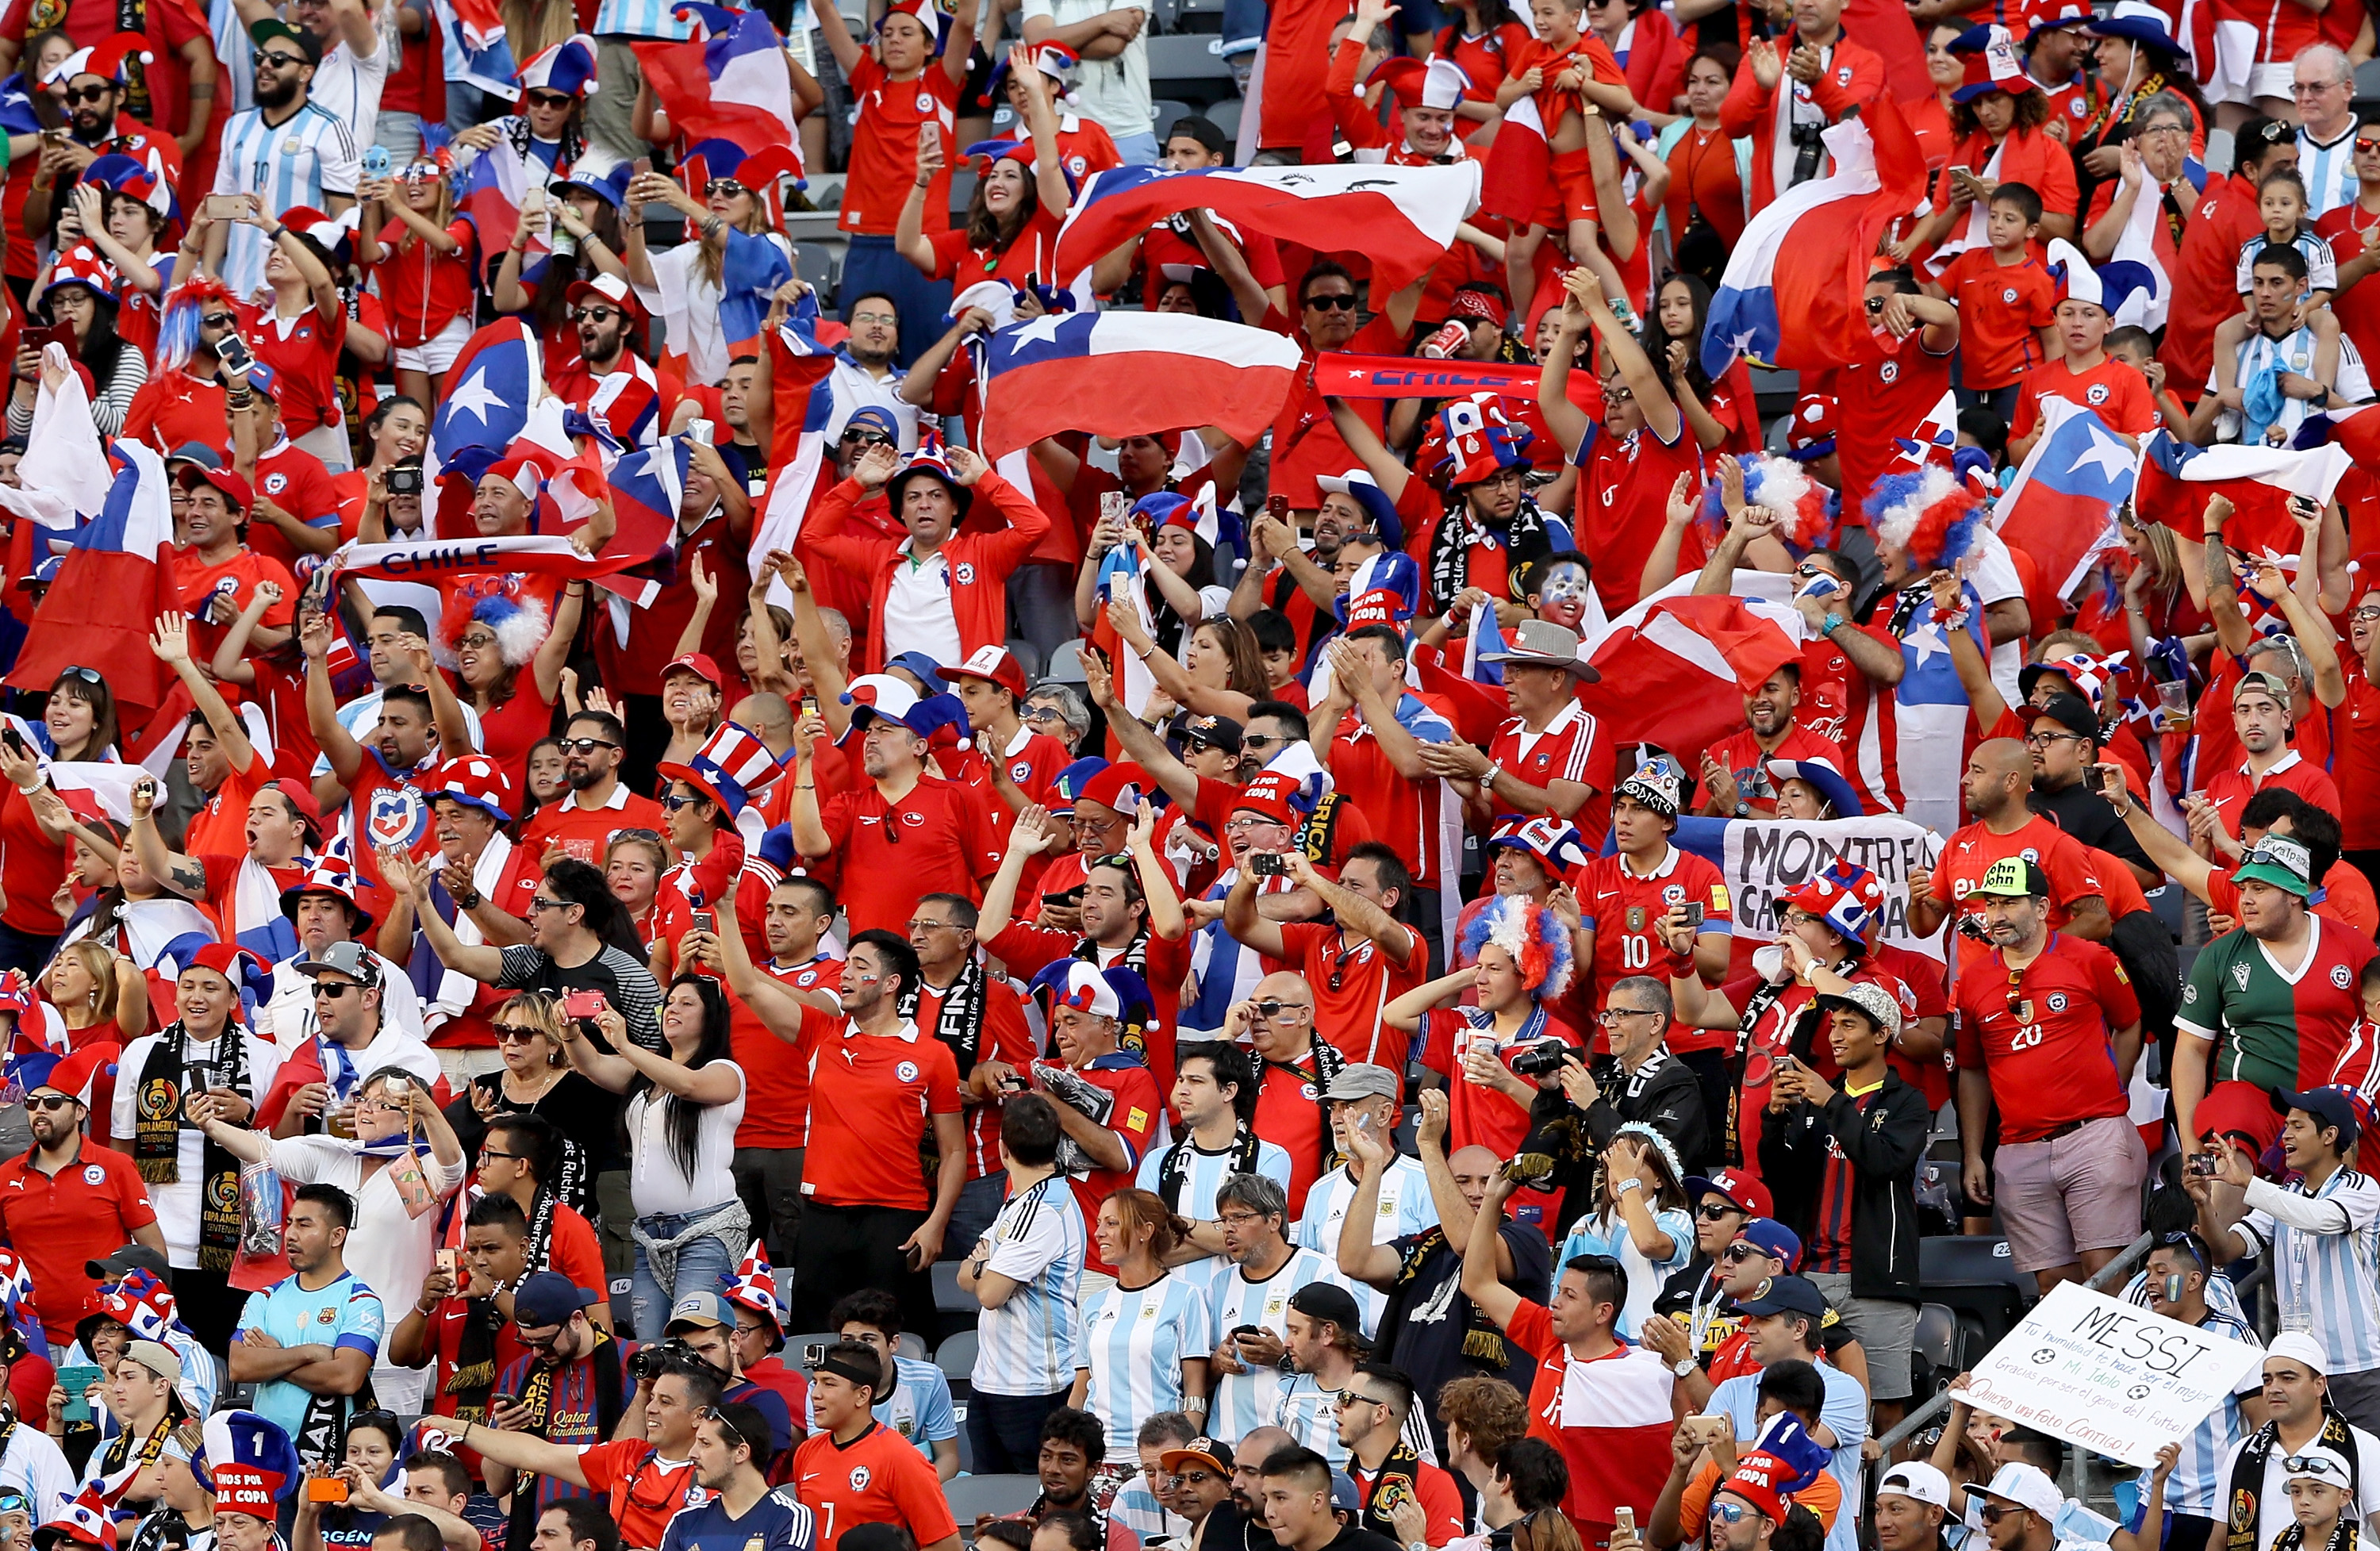 EAST RUTHERFORD, NJ - JUNE 26:  Chile fans celebrate as their team heads out for warm ups before the Copa America Centenario Championship match at MetLife Stadium on June 26, 2016 in East Rutherford, New Jersey.  (Photo by Elsa/Getty Images)